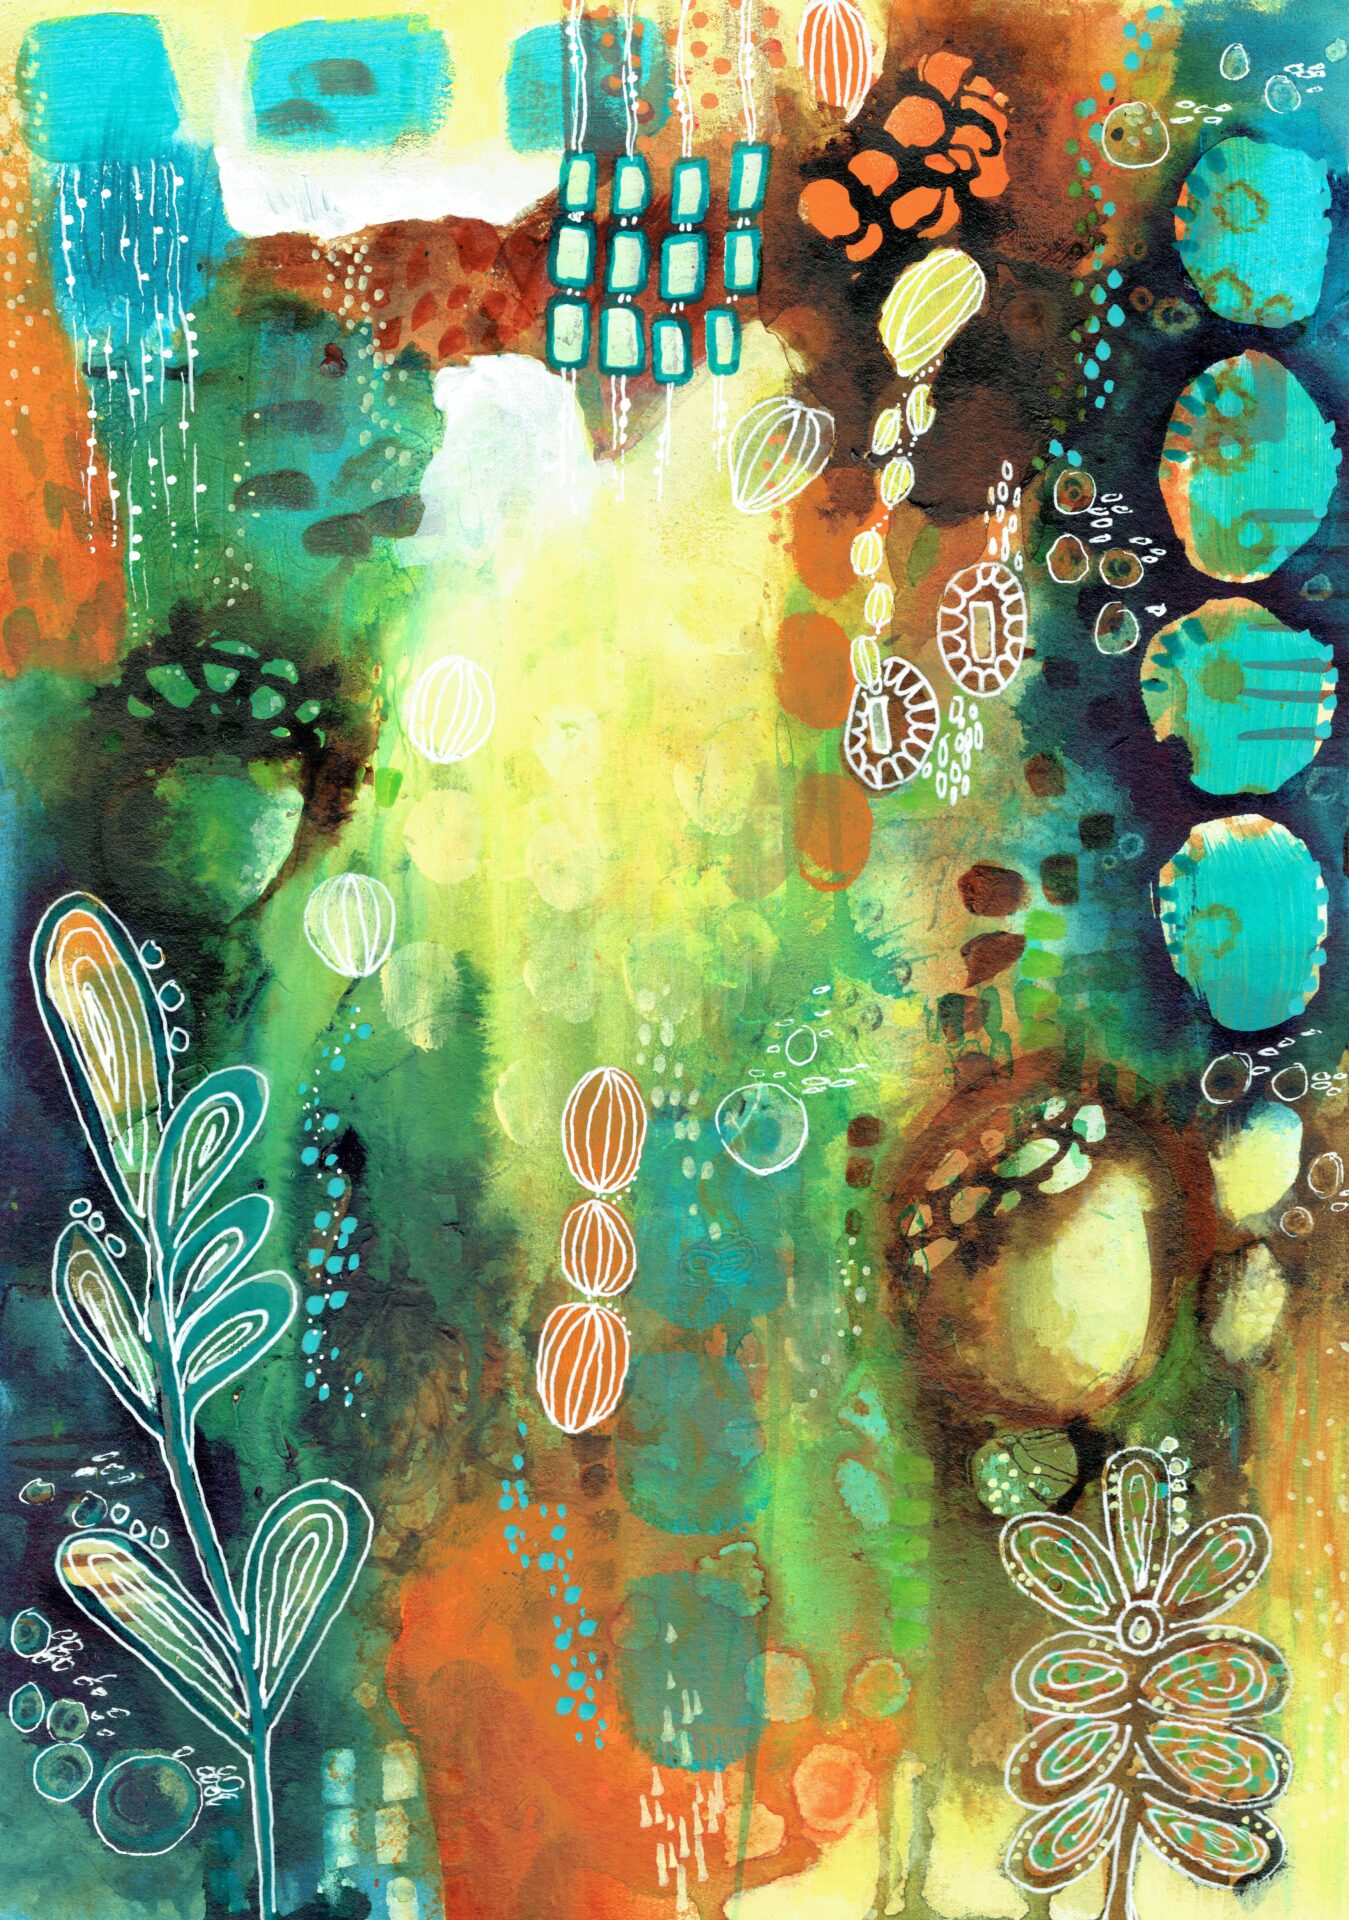 Wander Through The Garden By Deb Webb Showing In Works On Paper